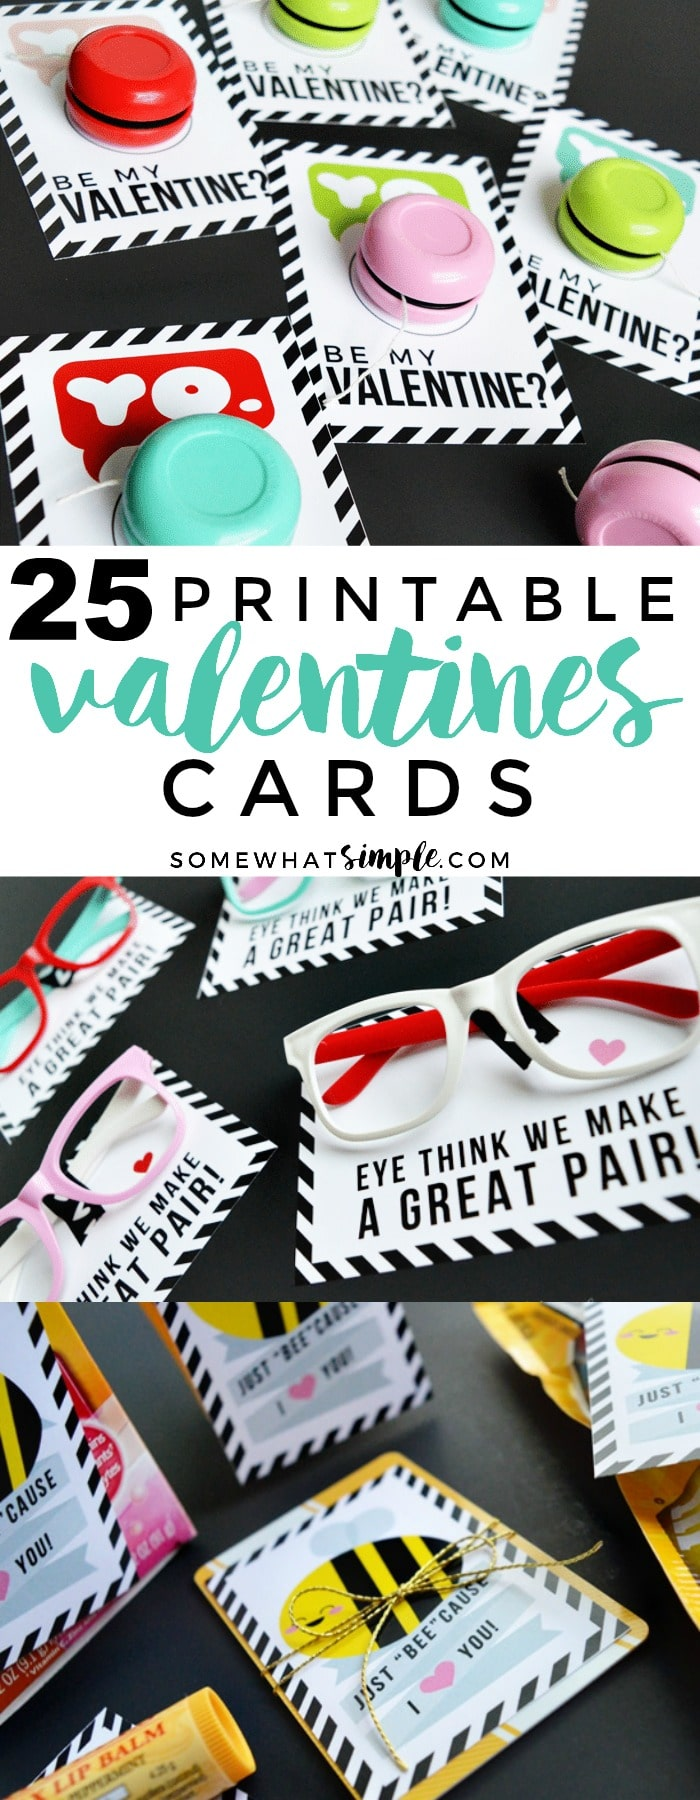 Each year we update our list of favorite Printable Valentine Cards with the newest and cutest ideas on the web! Here is our list of top 25 - take a look!